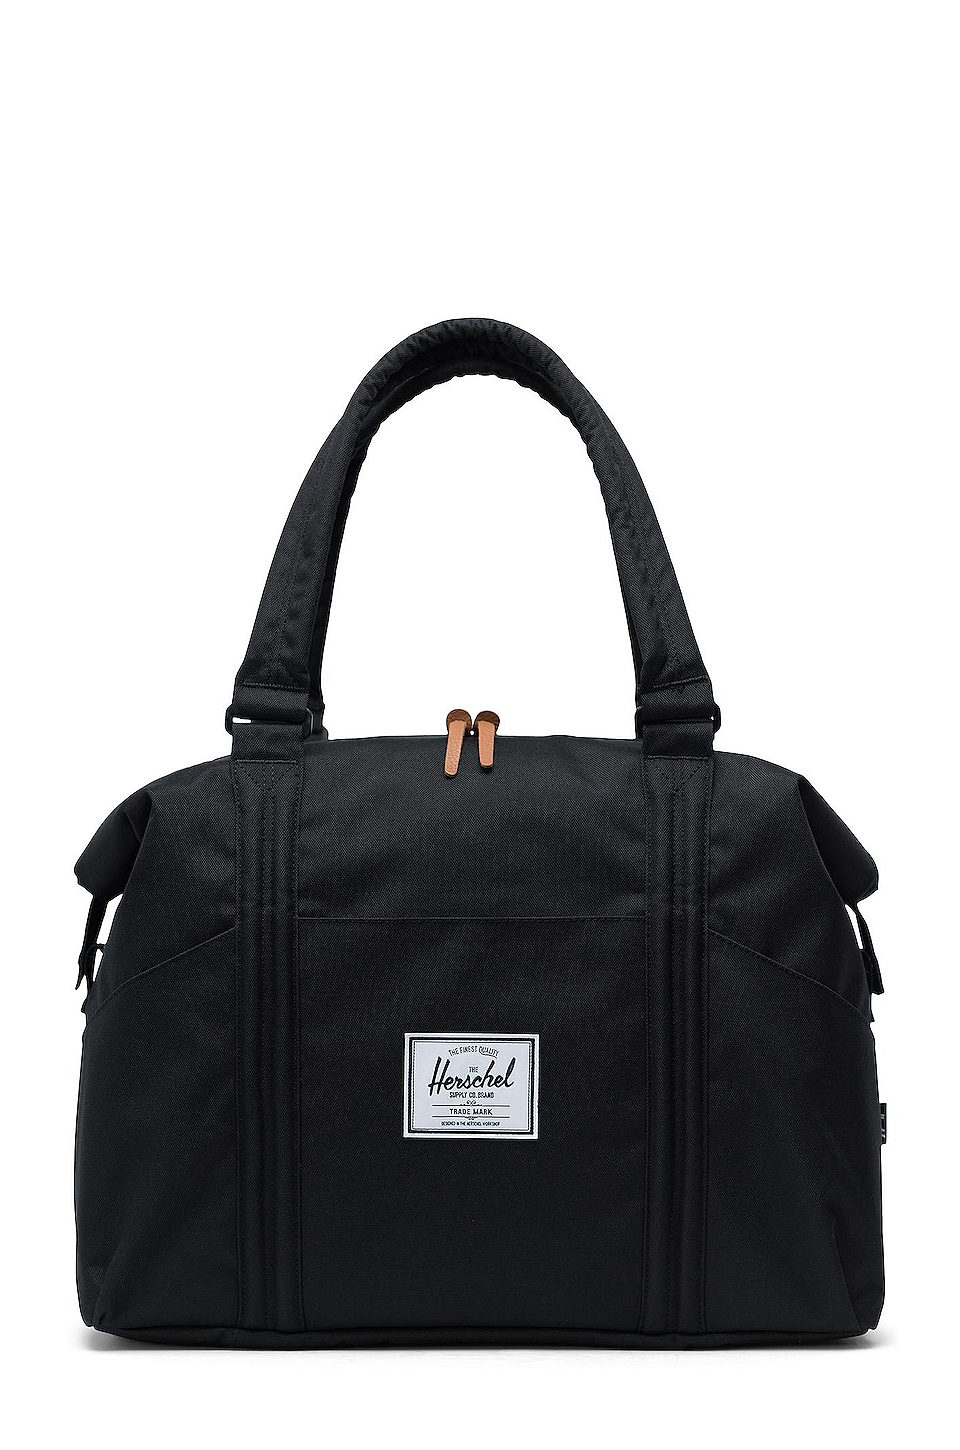 Herschel Supply Co. Strand Bag in Black